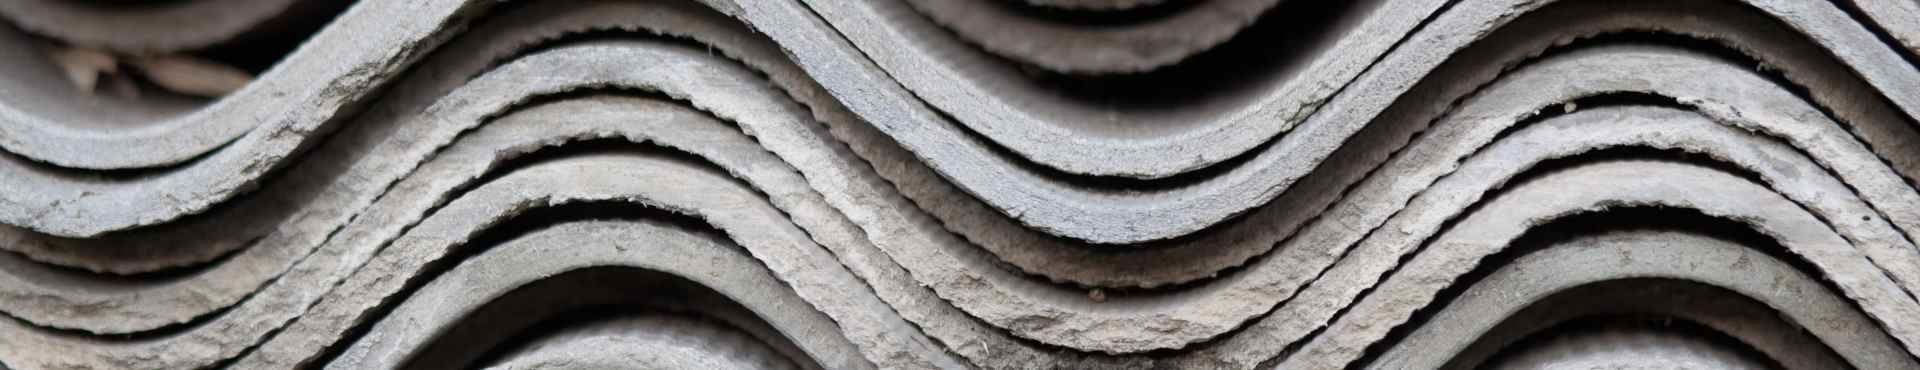 Asbestos sheets | Shine Lawyers